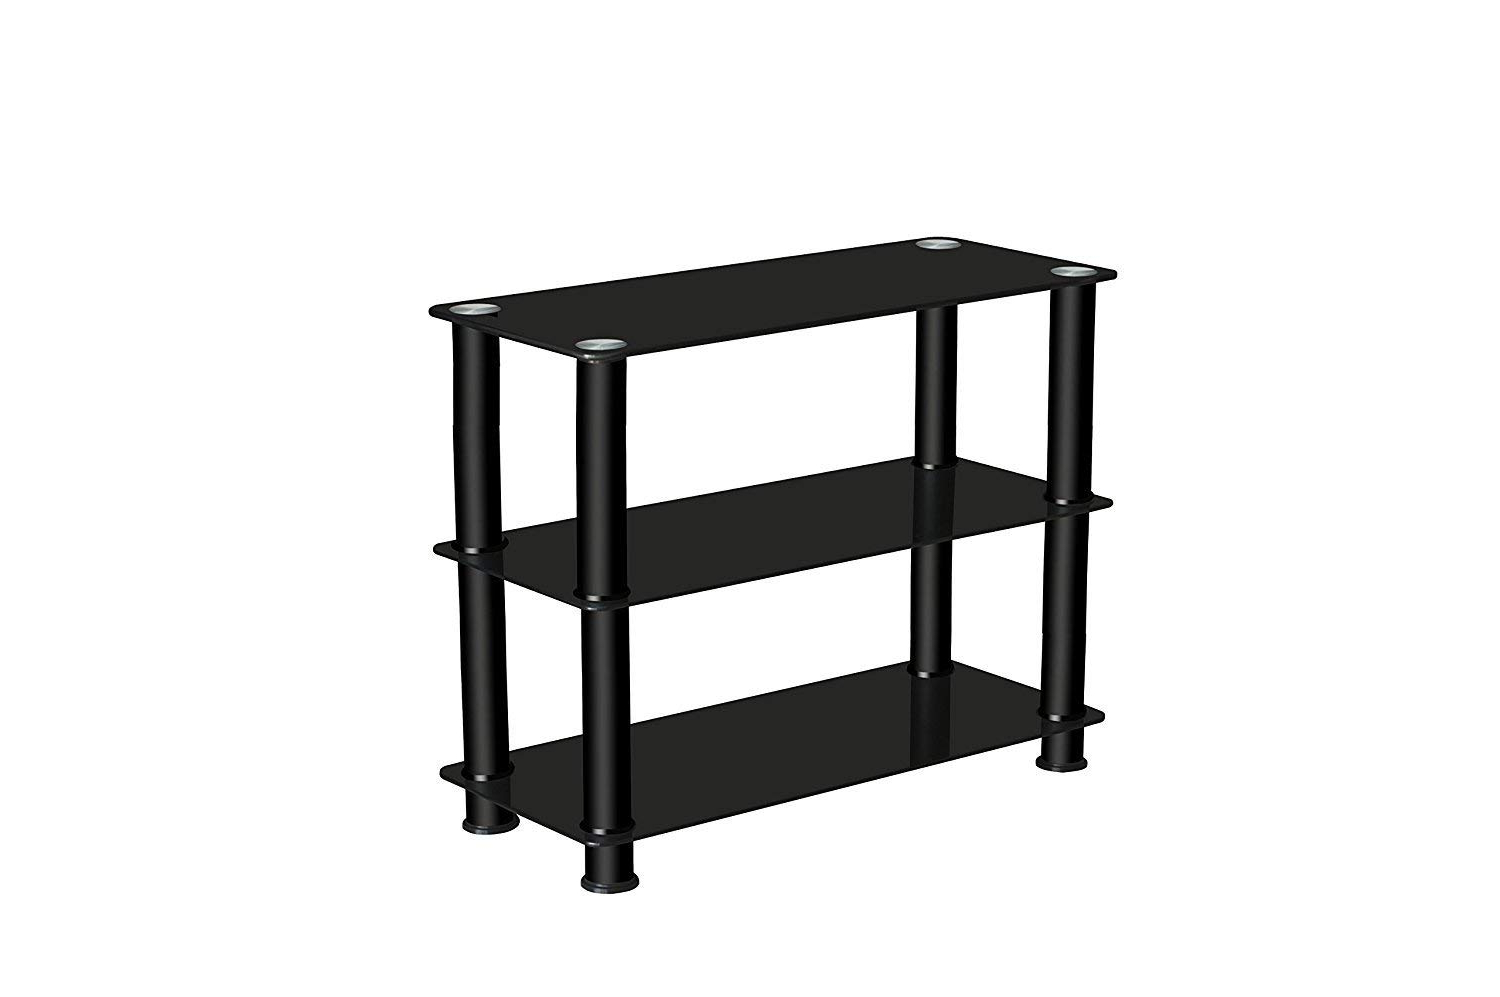 2017 Premier Av Tv Stand, Glass// Steel, All Black /( High Height 60Cm With Regard To 60 Cm High Tv Stand (View 2 of 20)